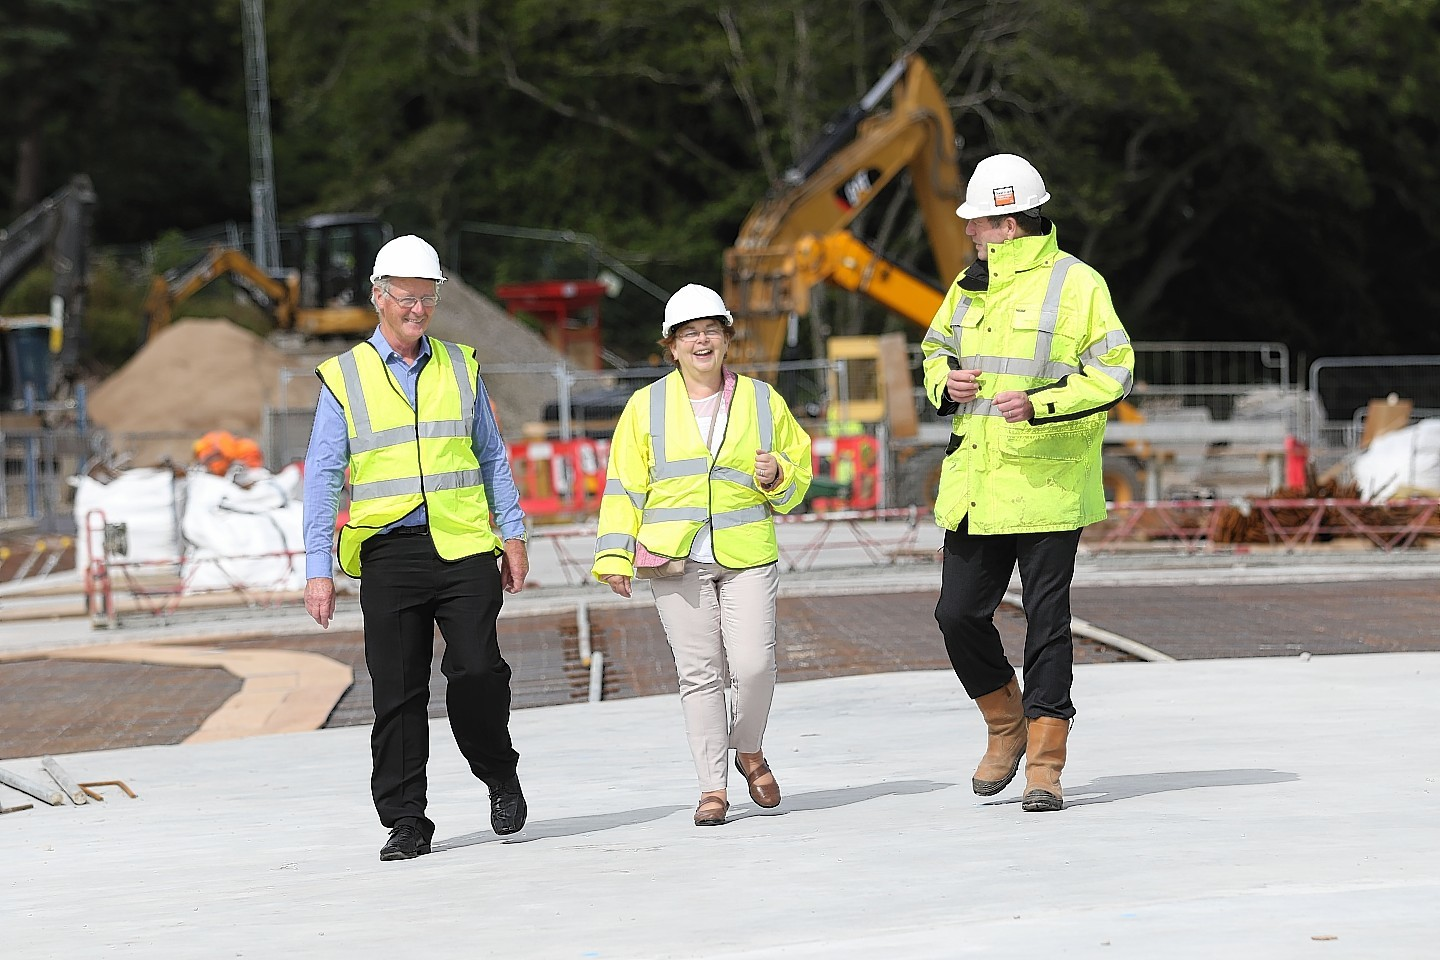 31 July 2017: Councillors Allan Henderson, left, and Trish Robertson were given a tour of the West Link bridge and the new Highland Rugby Club building by Highland Council's head of infrastructure Colin Howell, right. Picture: Andrew Smith